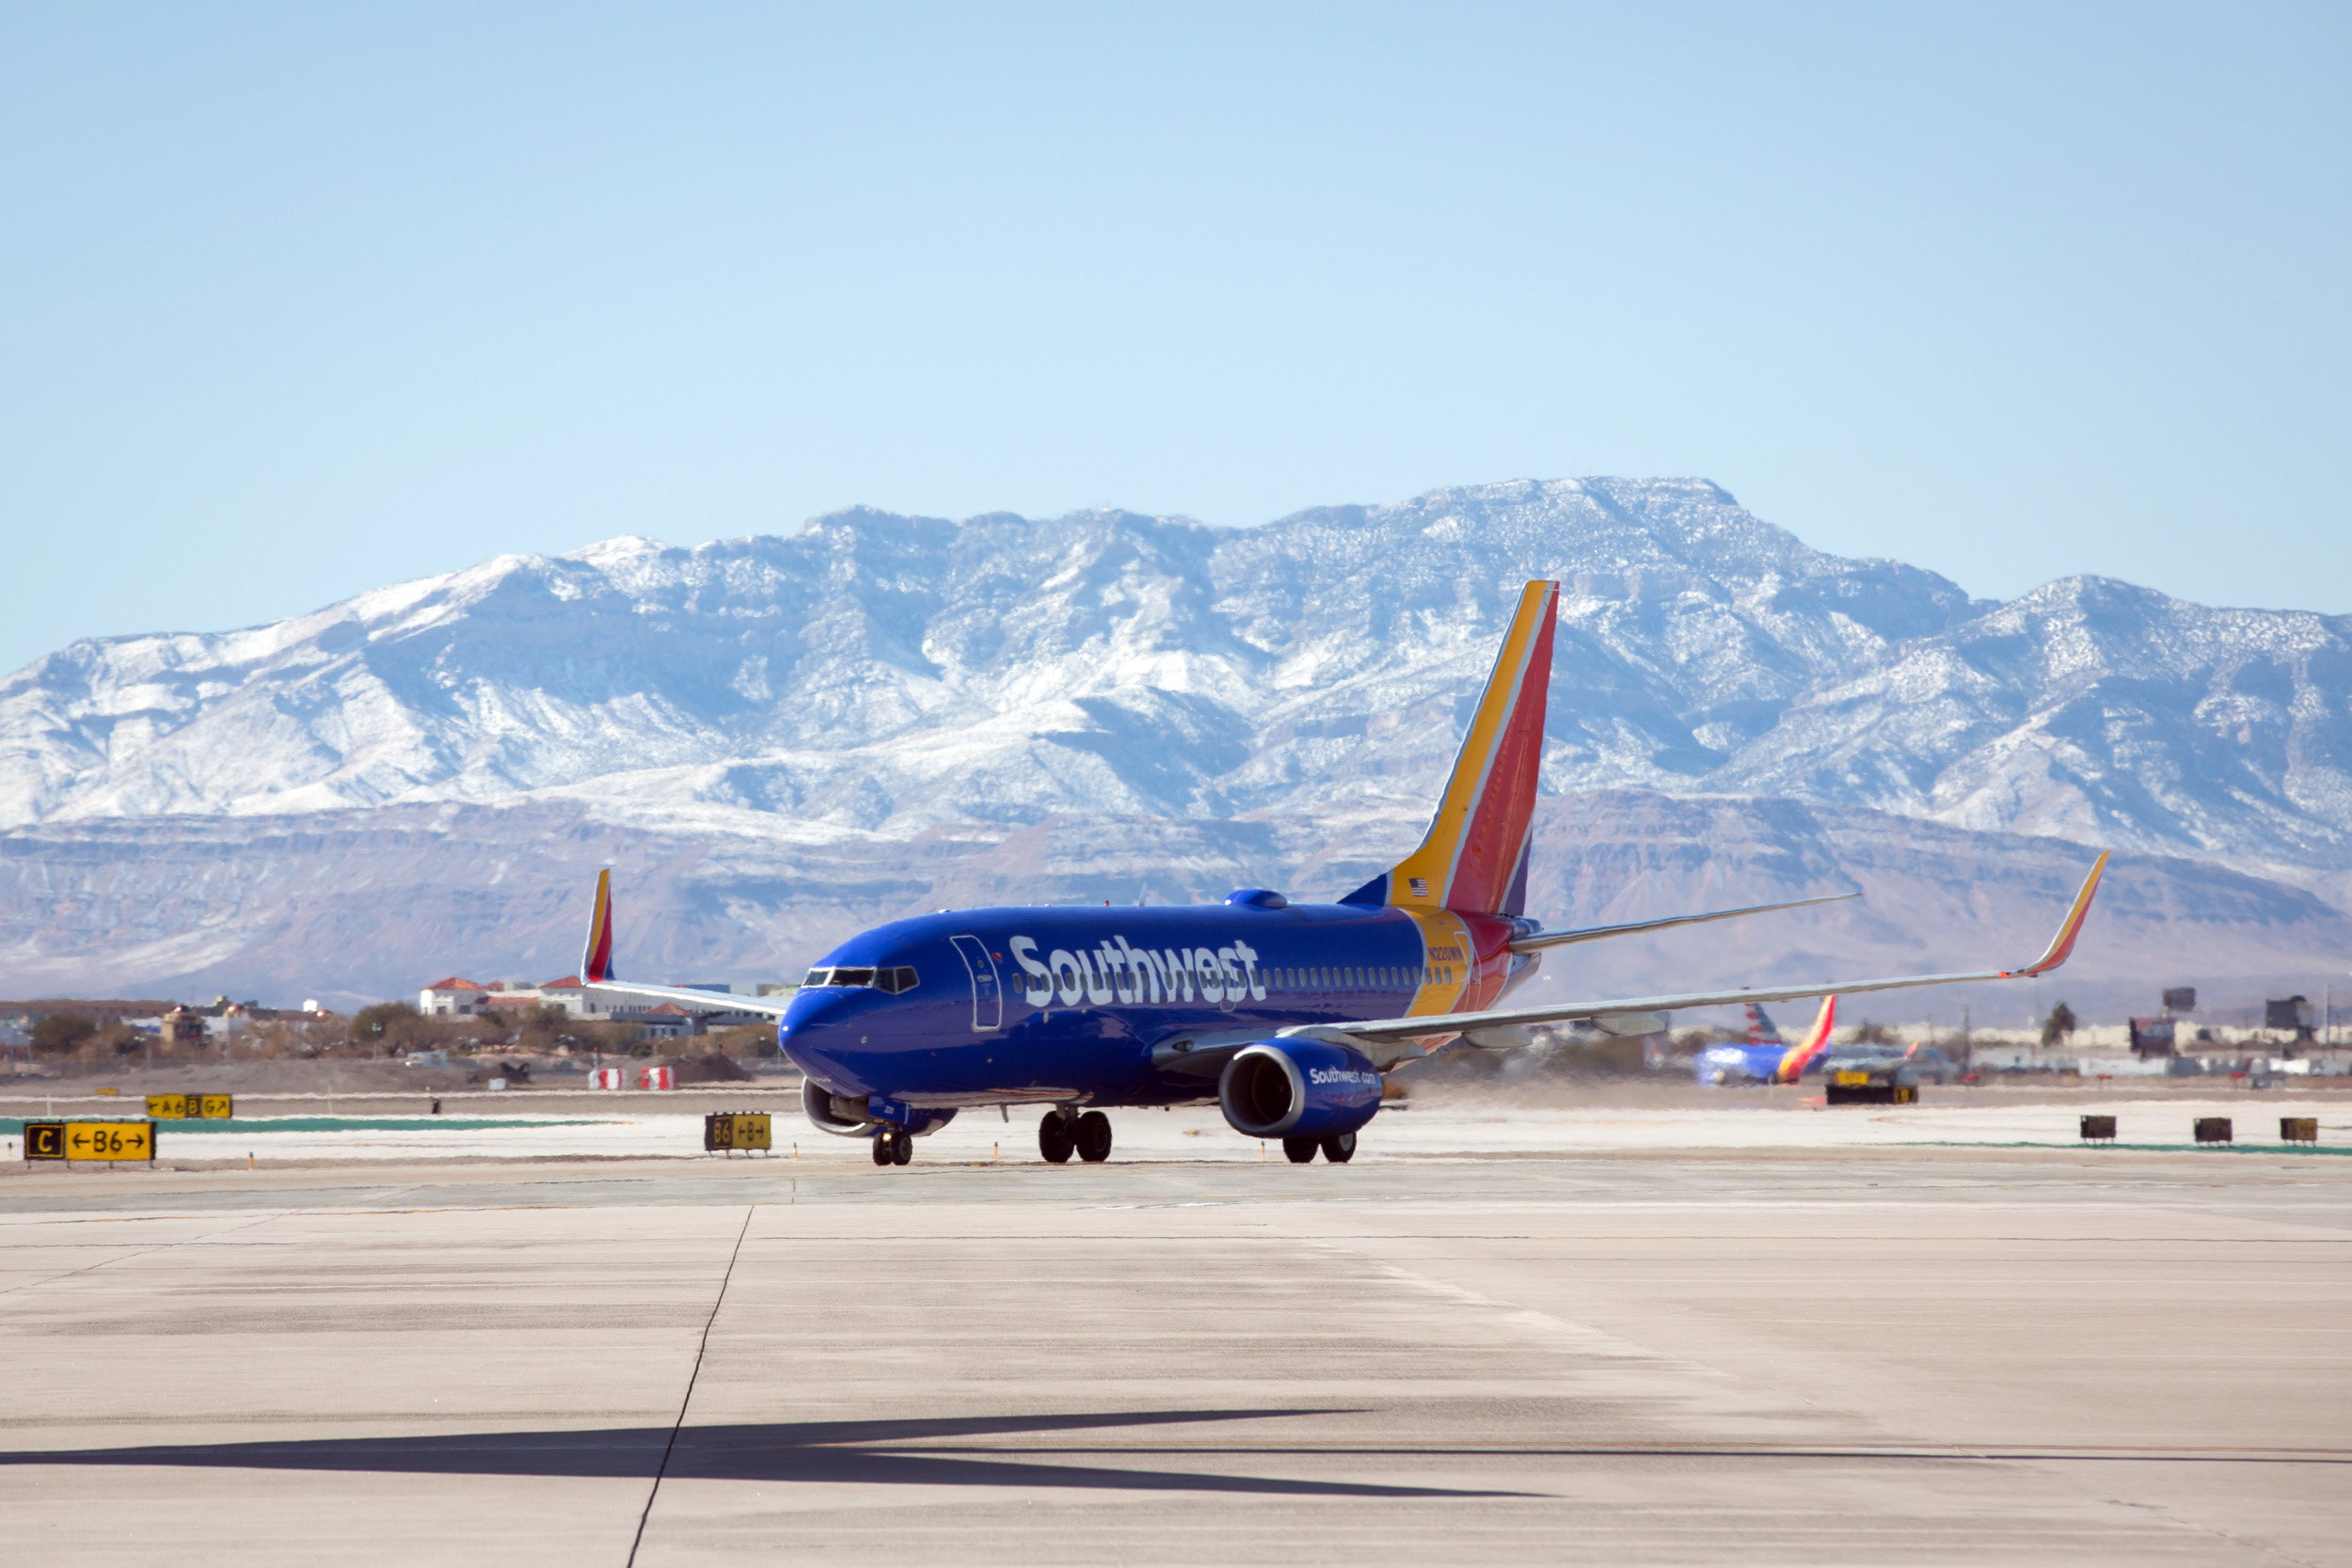 Southwest Airlines operations in Las Vegas.// Stephen M. Keller, 2019